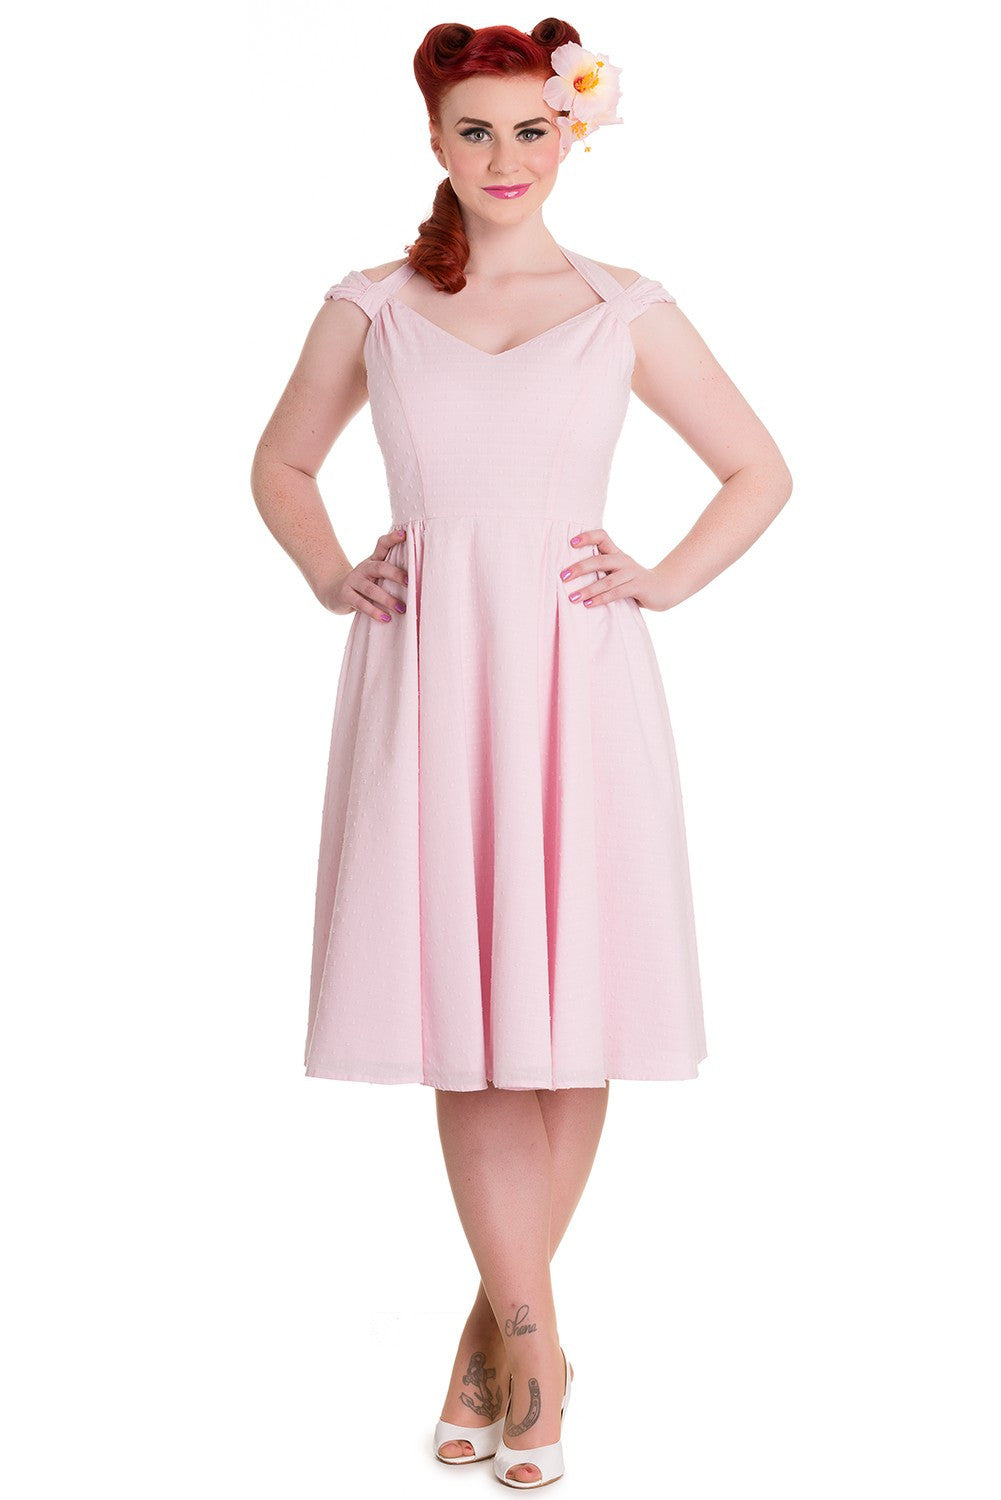 Eveline Dress in Pink